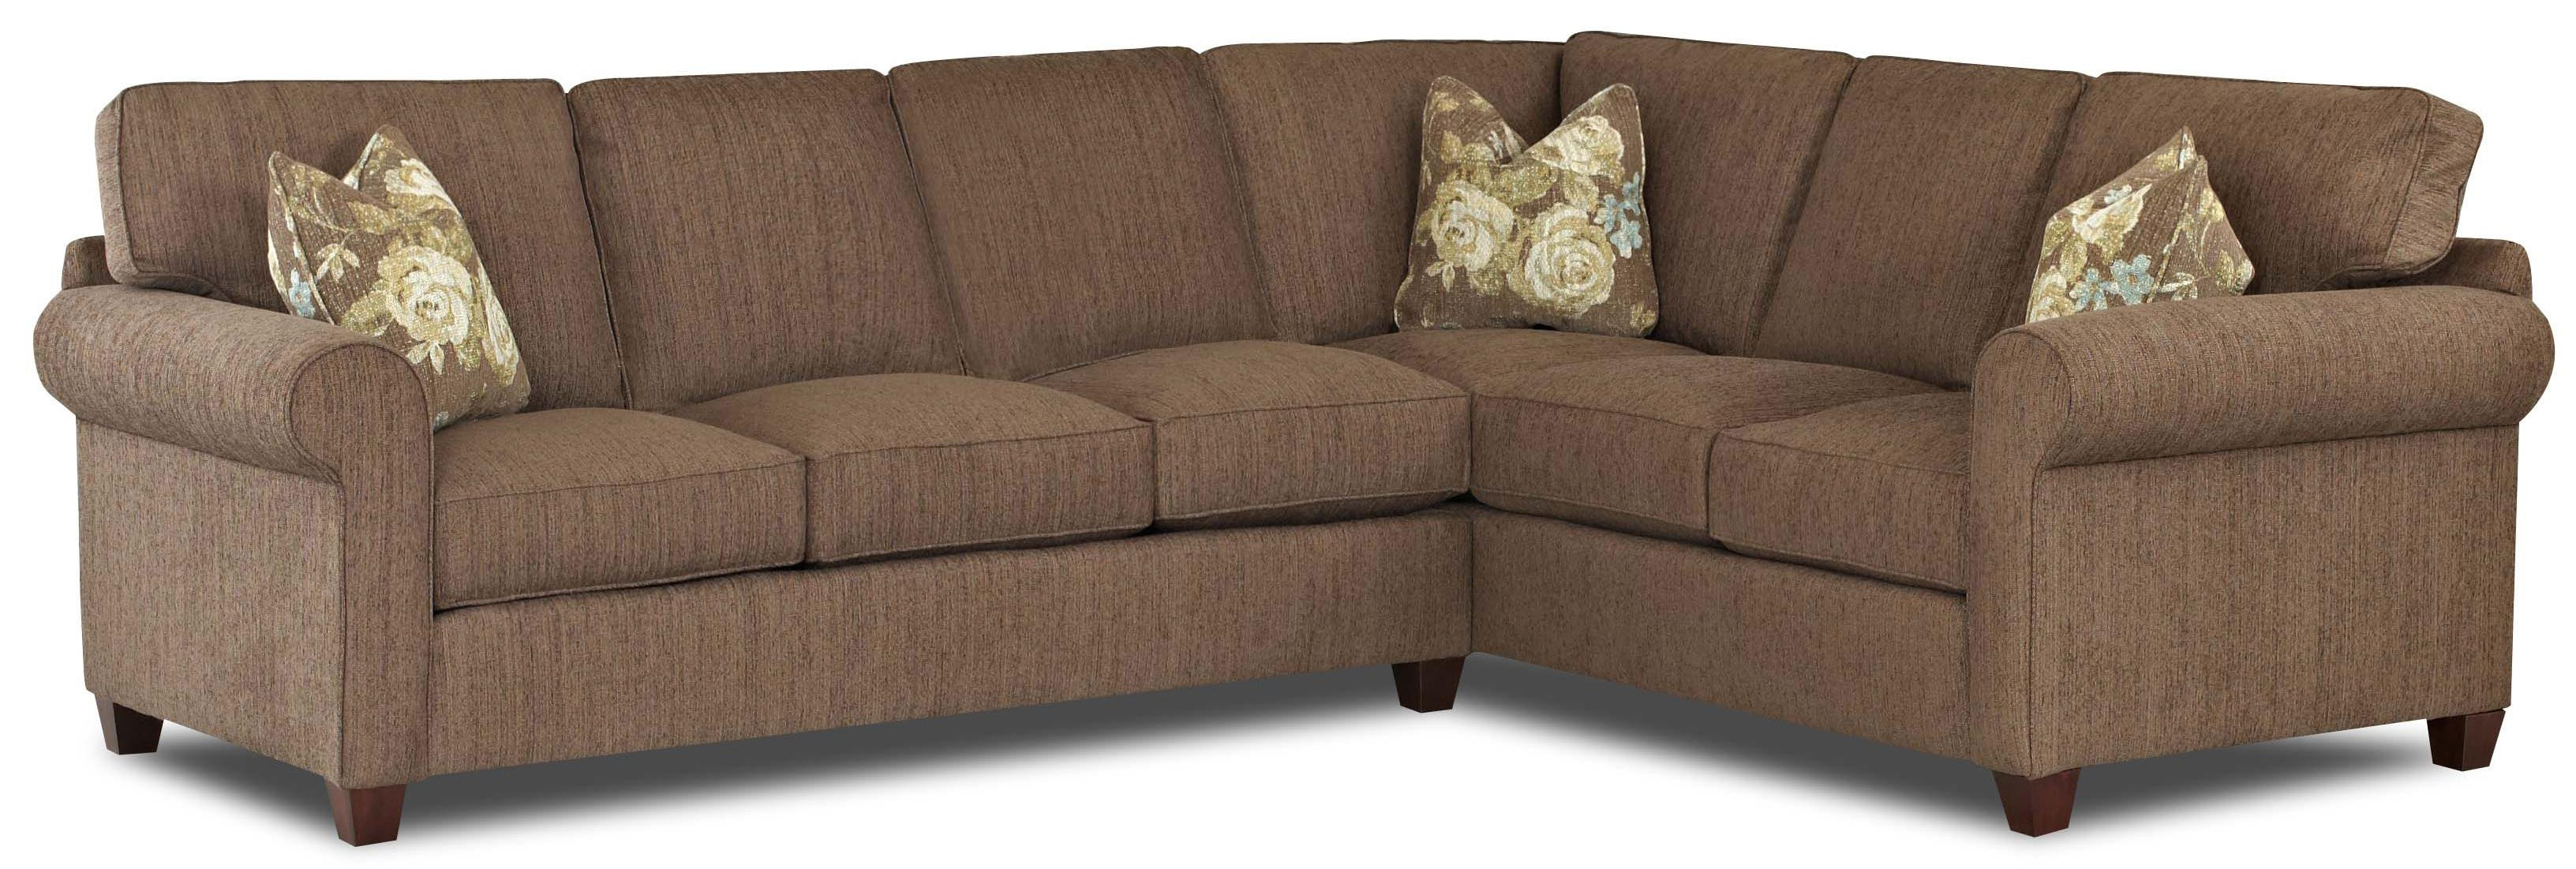 2019 Avery 2 Piece Sectionals With Raf Armless Chaise Intended For 2 Piece Sectional Sofa Slipcovers – Home Decor  (View 1 of 20)